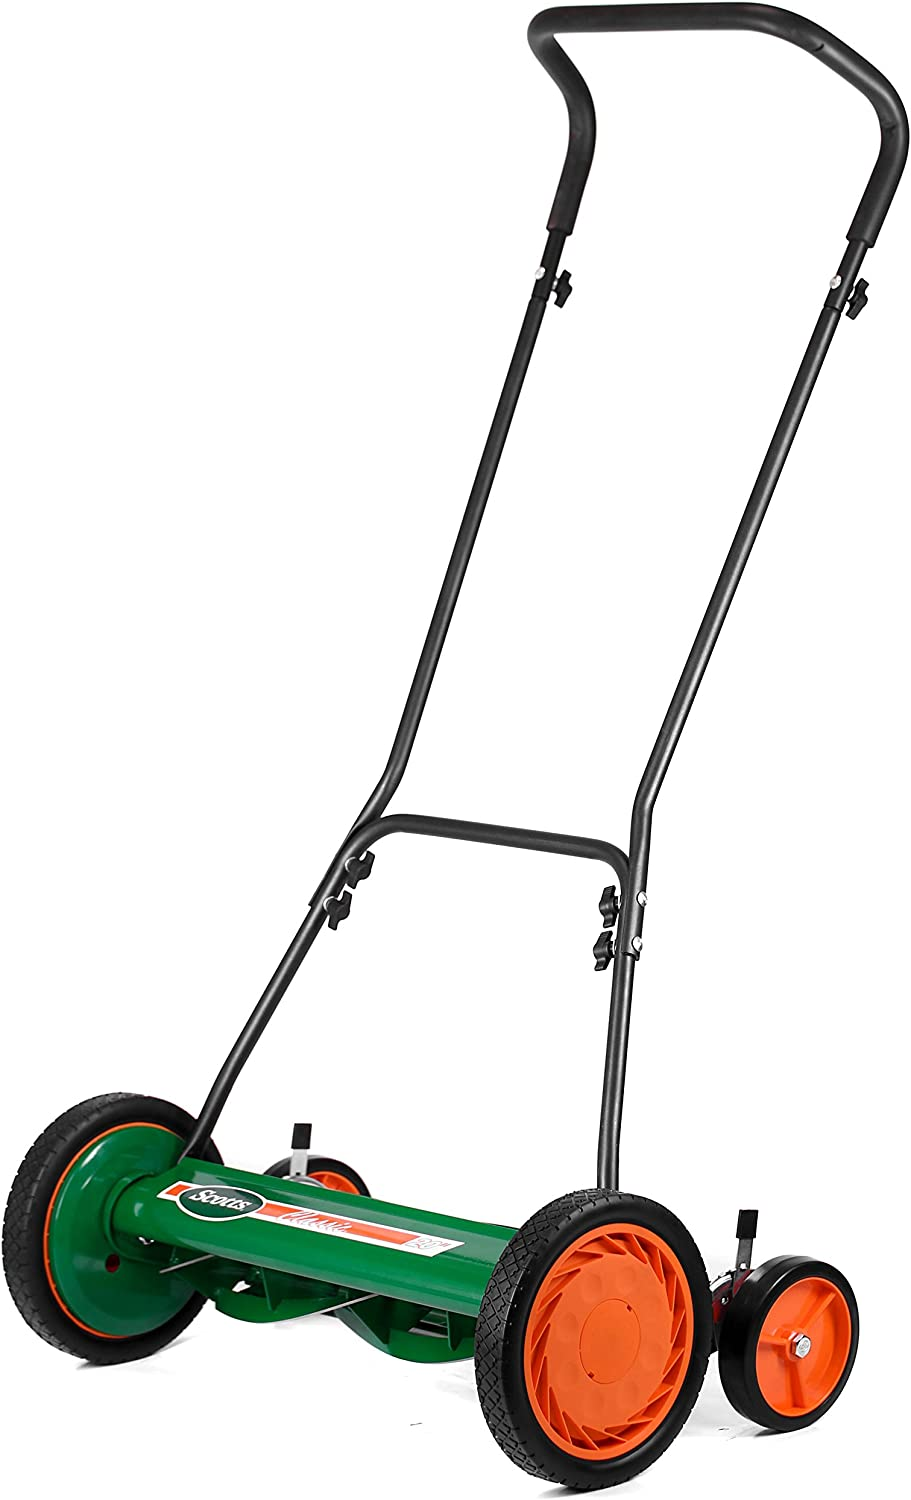 2. Scotts 2000-20 20-Inch Classic Push Reel Lawn Mower